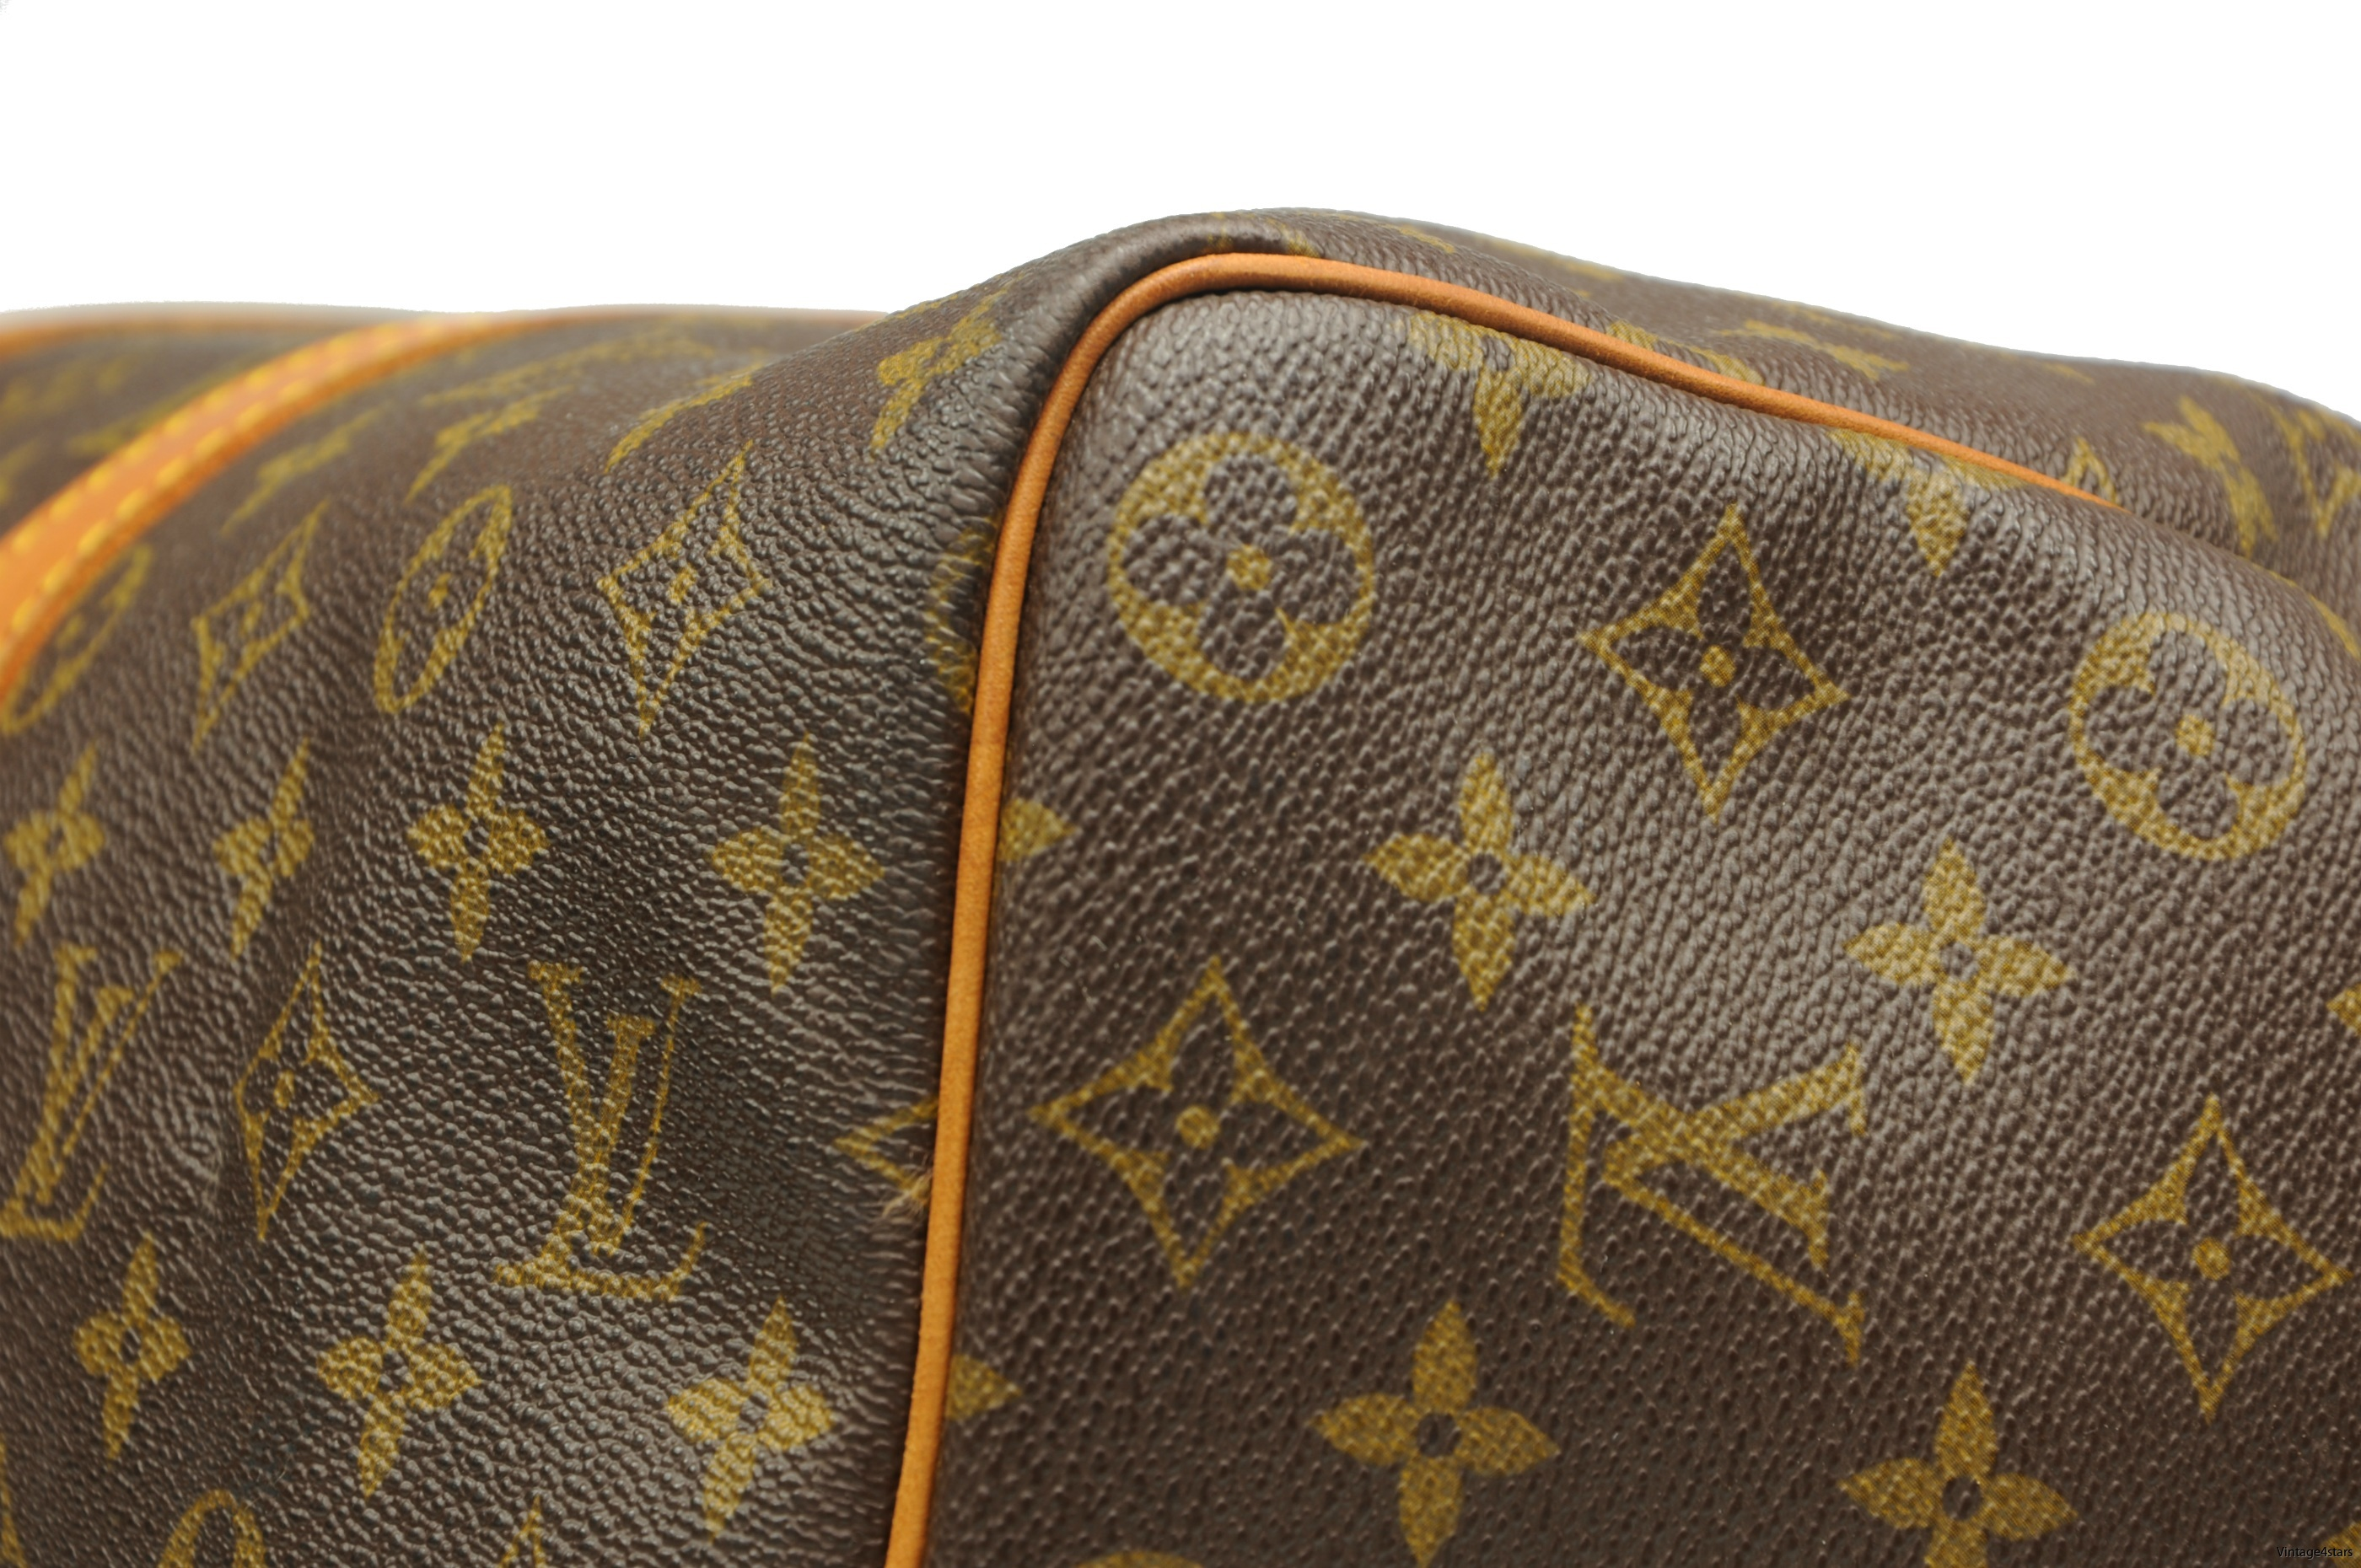 Louis Vuitton Keepall 45 1003